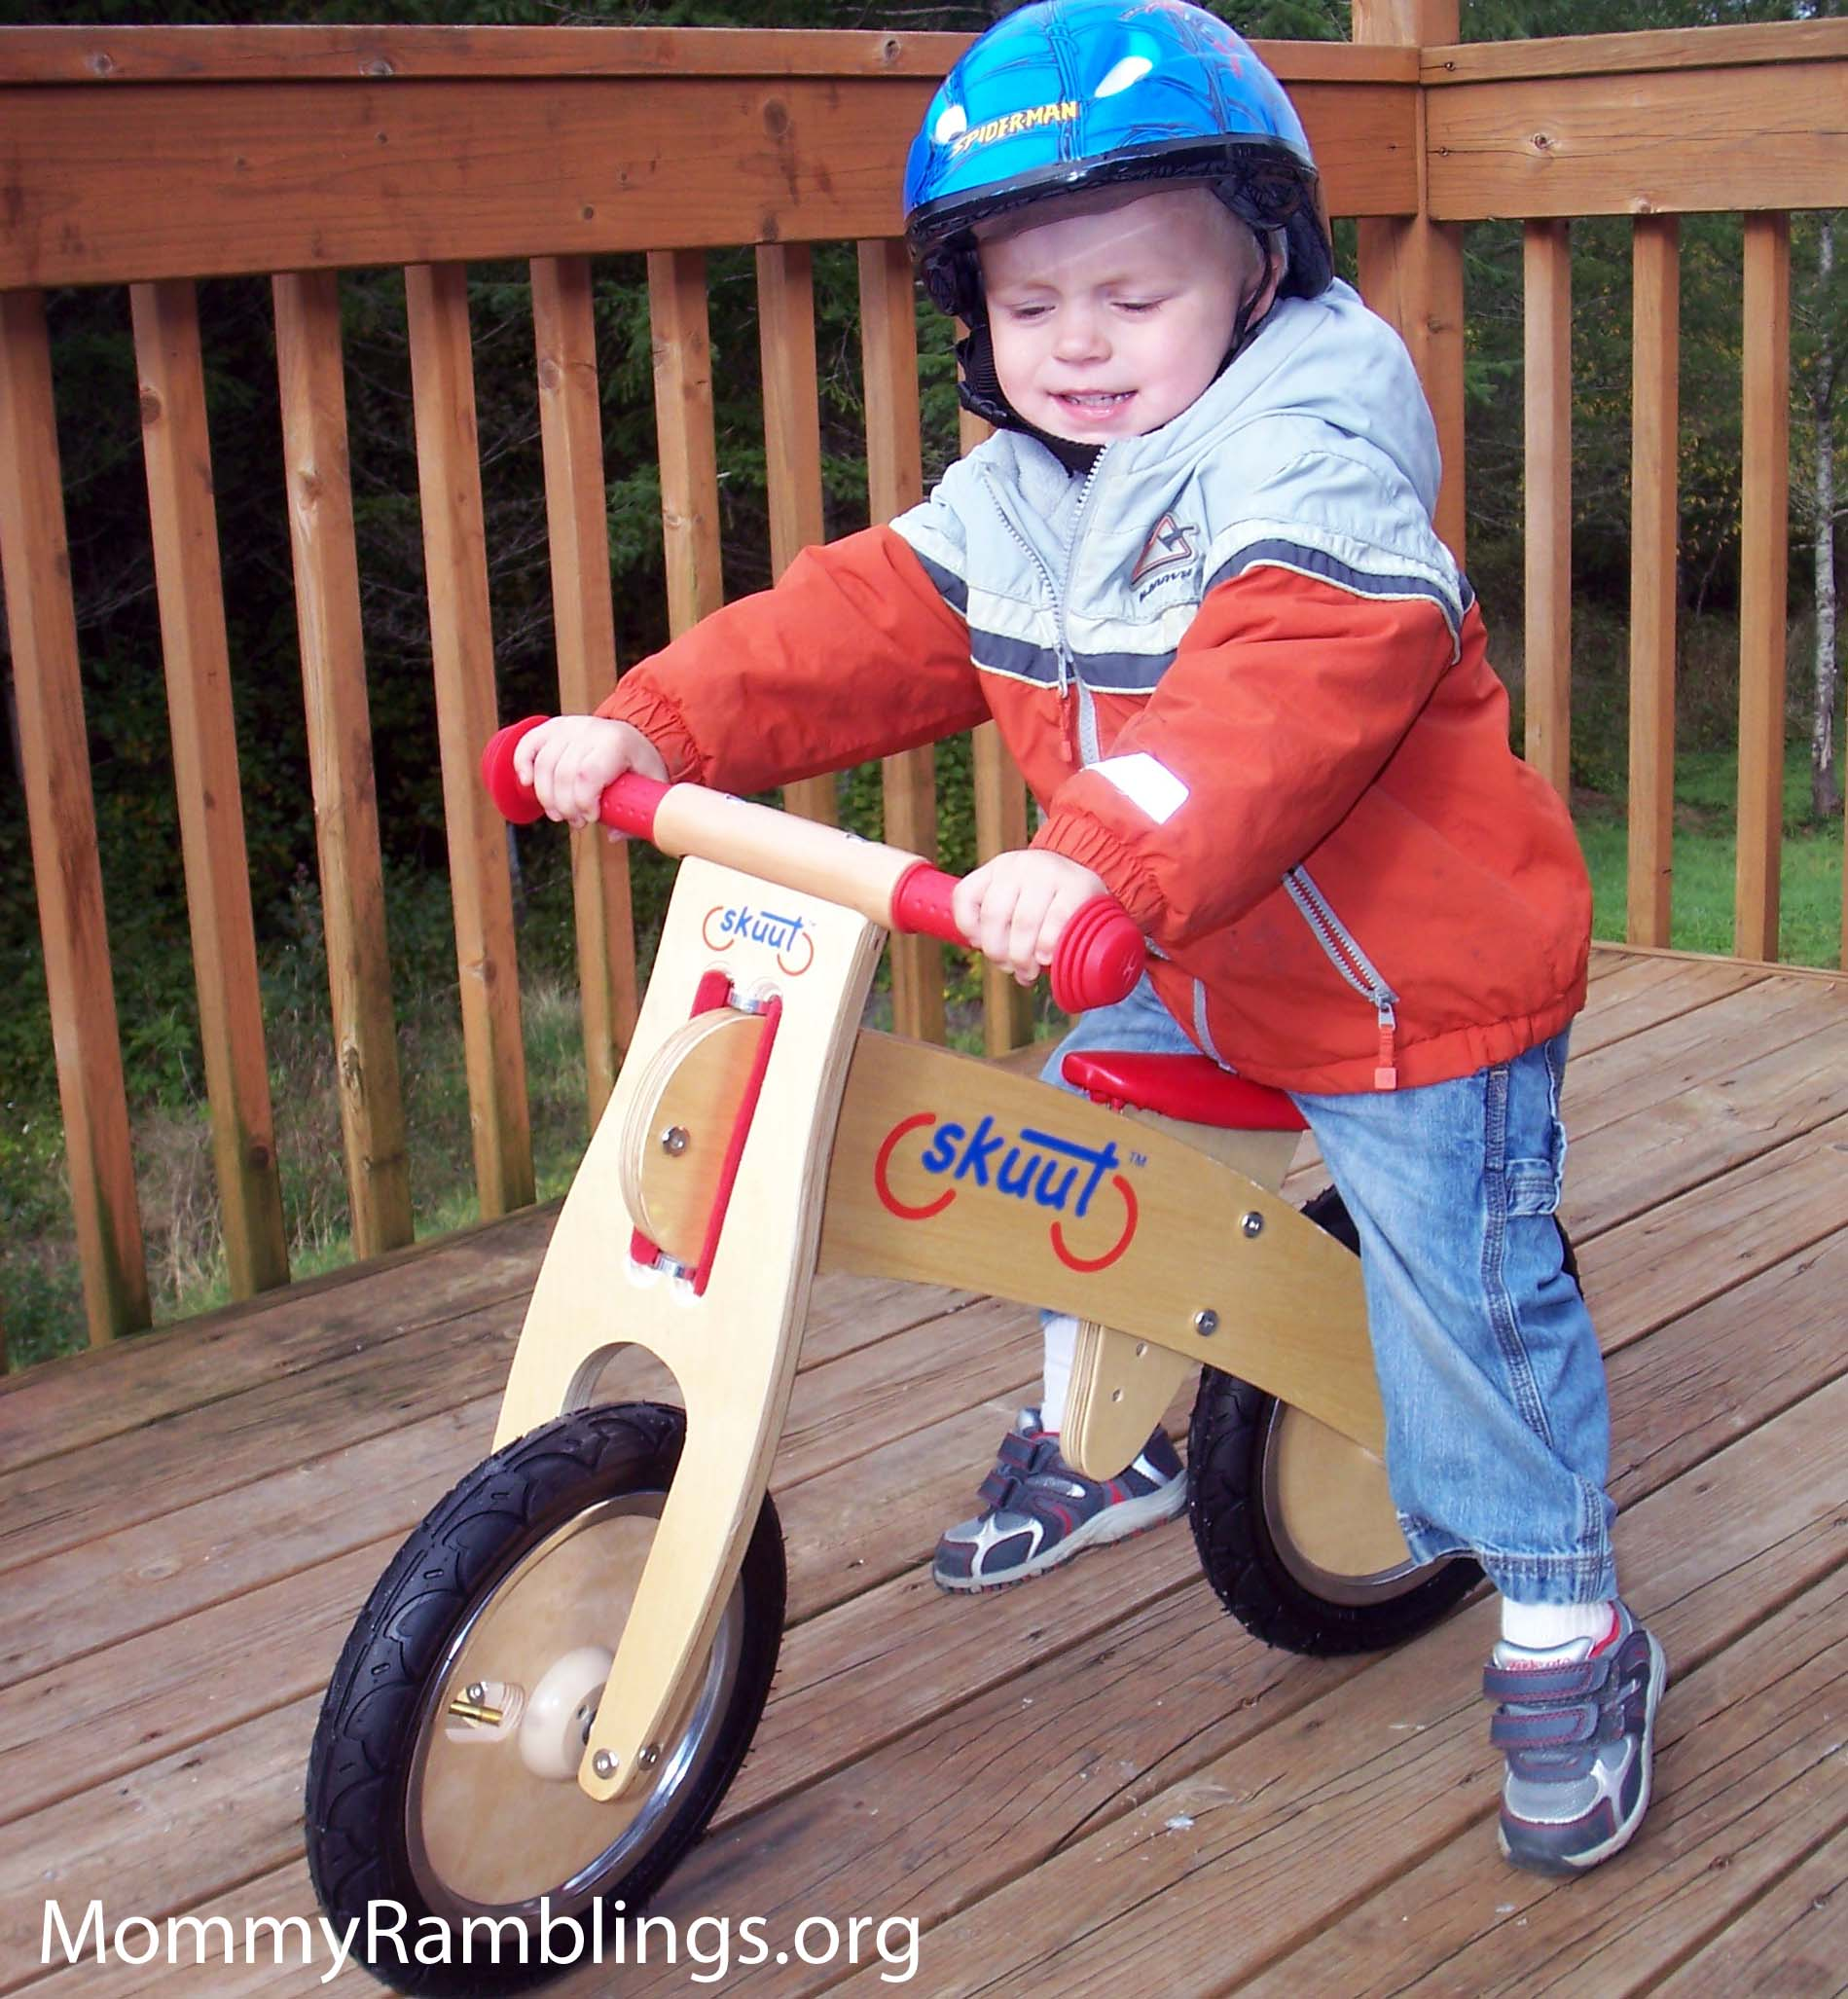 Skuut Wooden Balance Bike Mommy Ramblings